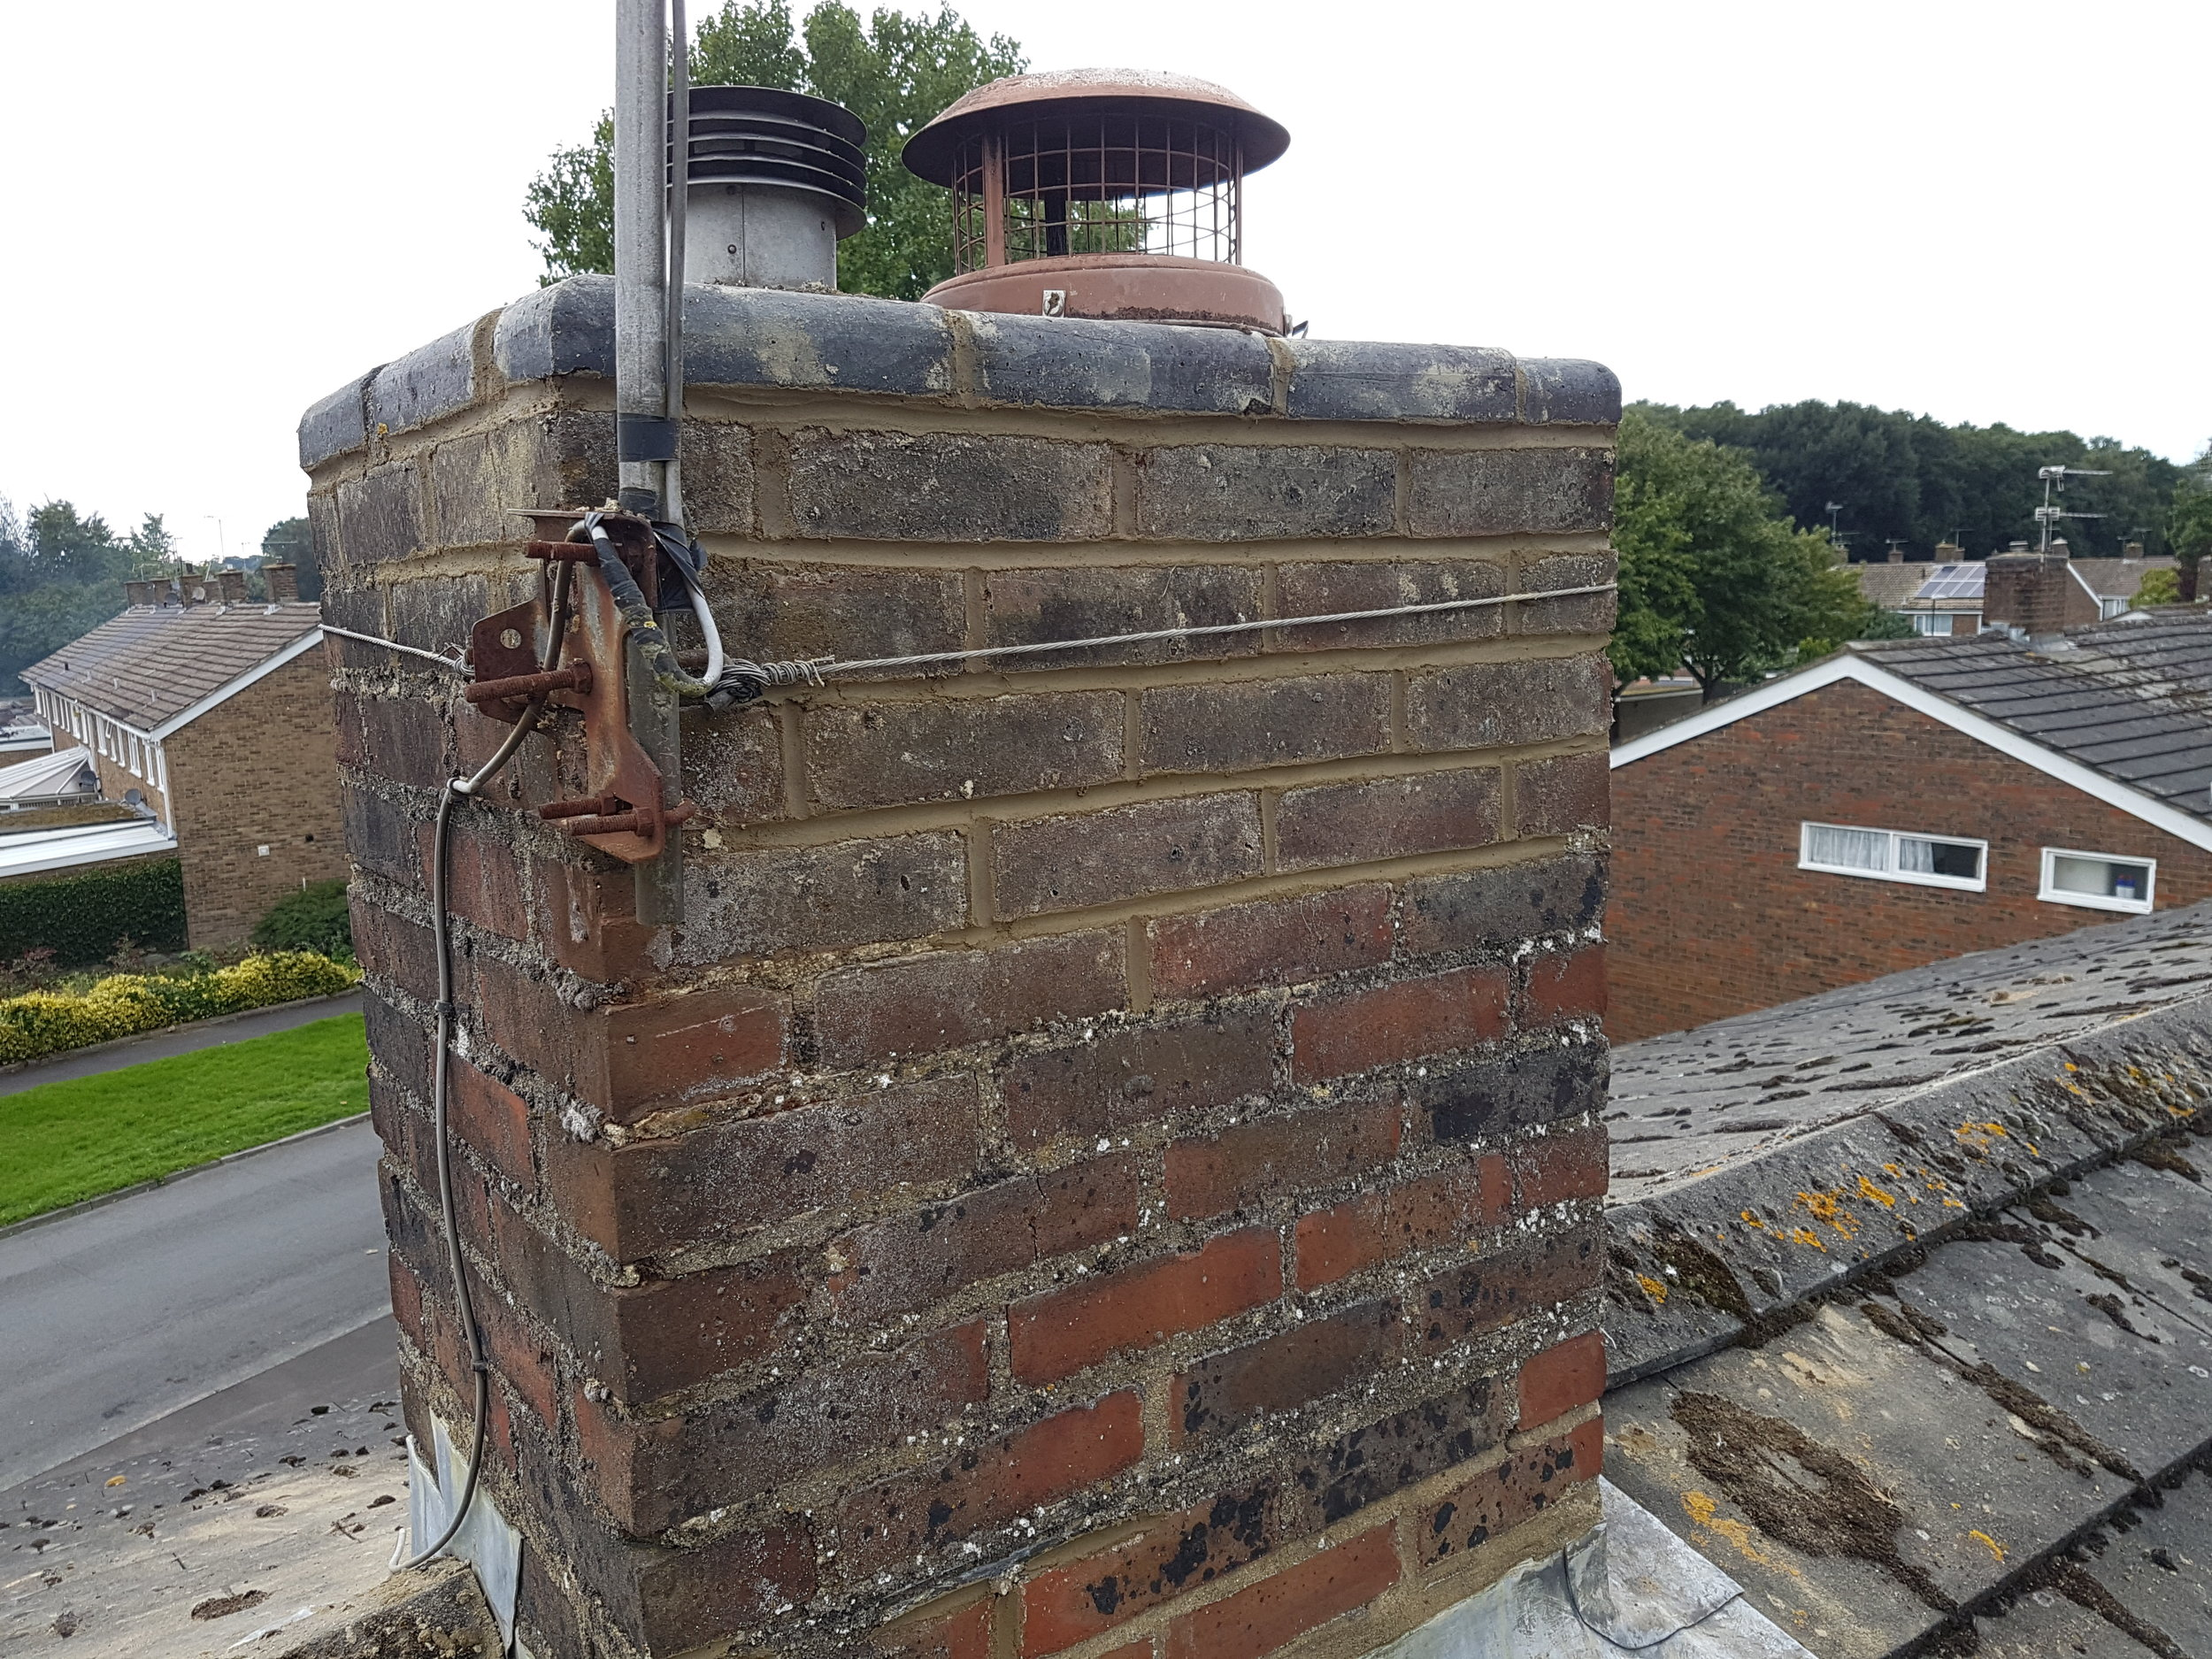 Repointing old brick work - Old brick work can loose its durabilaty with age due to poor mortar joint. When this is the case the old mortar needs to be grinded out then repointed with new fresh sand and cement (mortar). Not only does this completely strengthen the brick work but if gives it a nice new fresh look if done properly.